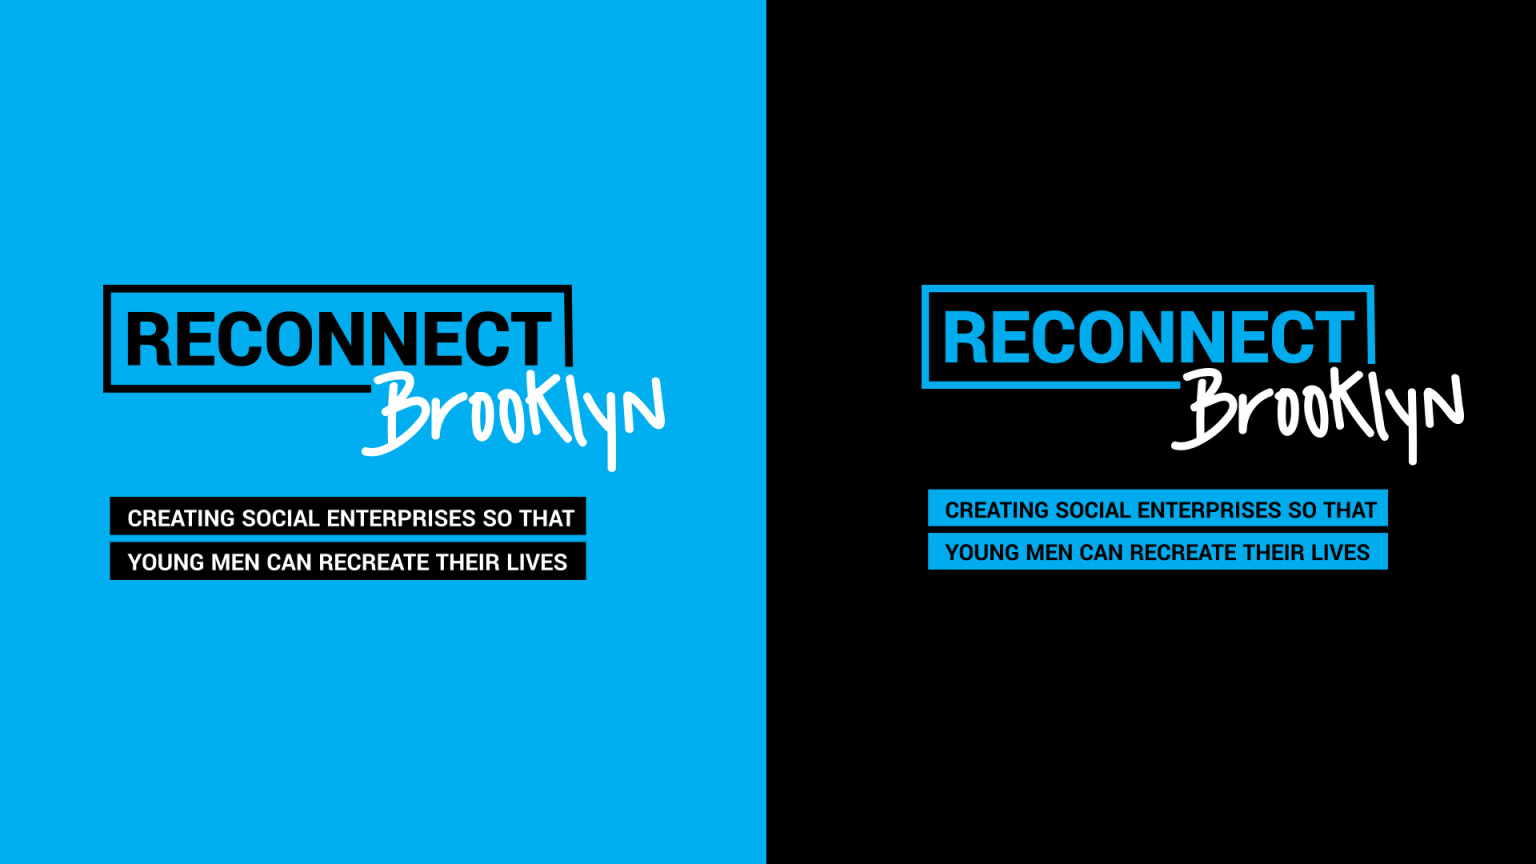 Reconnect Brooklyn